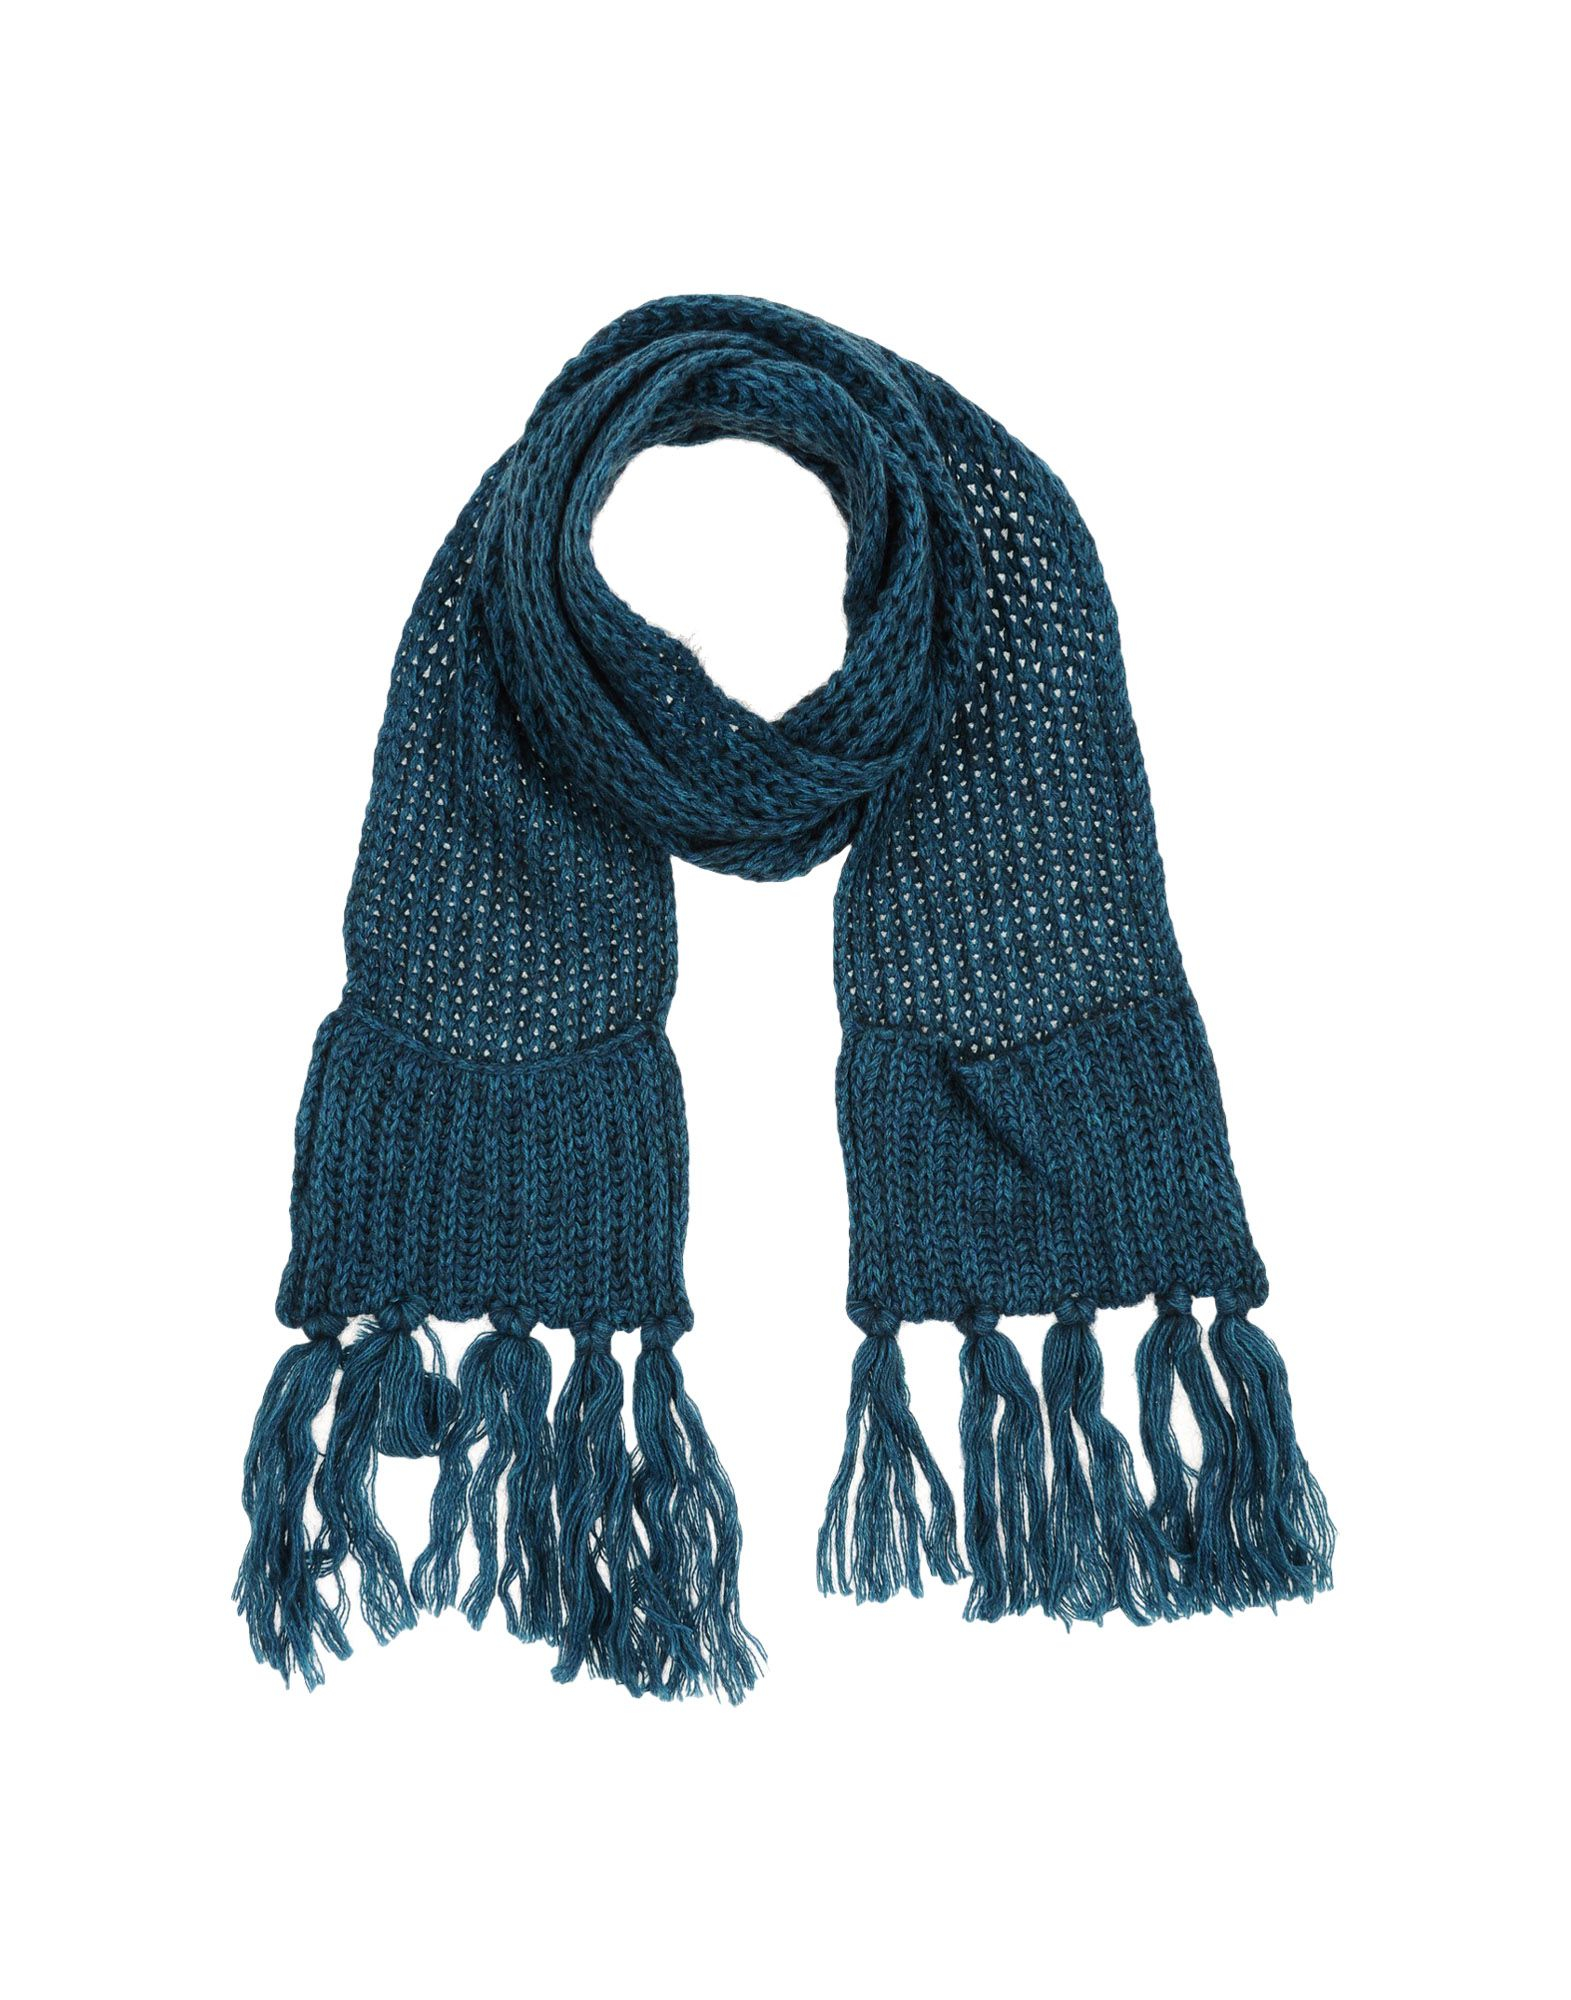 ACCESSORIES - Oblong scarves Loma 8xylC